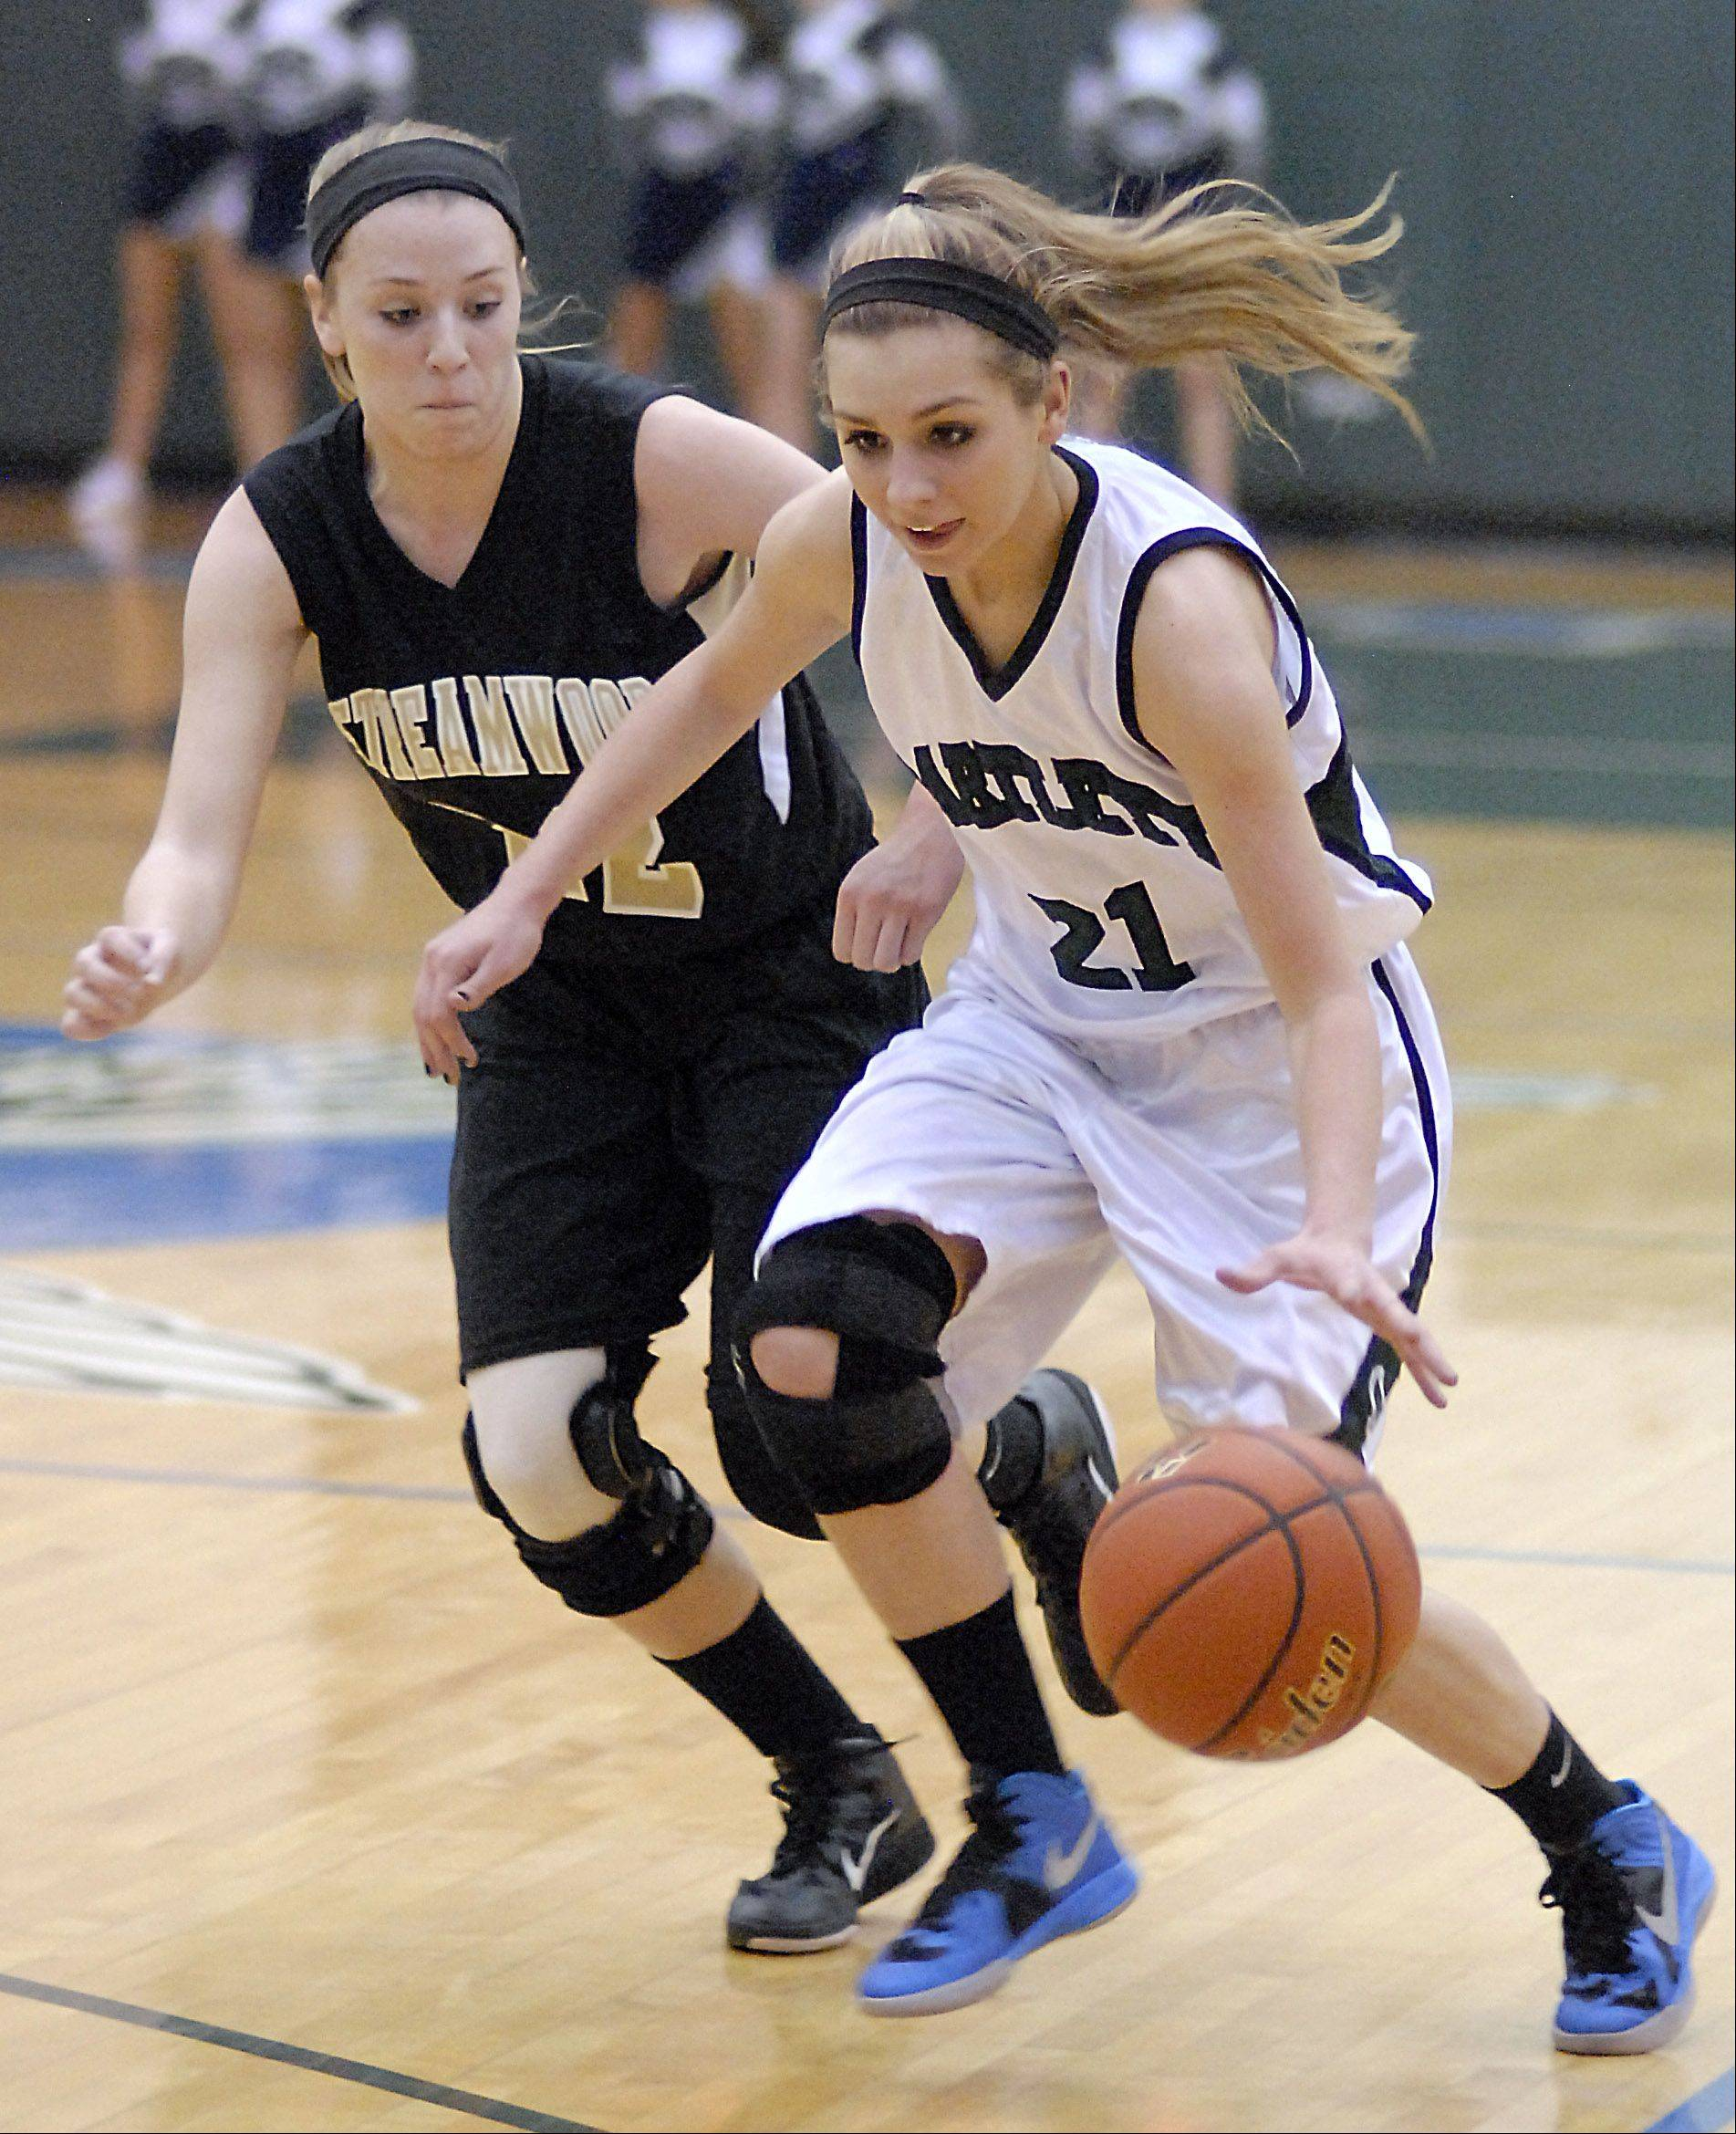 Bartlett's Chantel Zasada (21) dribbles against the defense of Streamwood's Holly Foret Wednesday night in Bartlett. Bartlett is the defending champion at the Dundee-Crown Charger Classic next week, while Streamwood travels to the Mundelein Holiday Tournament.